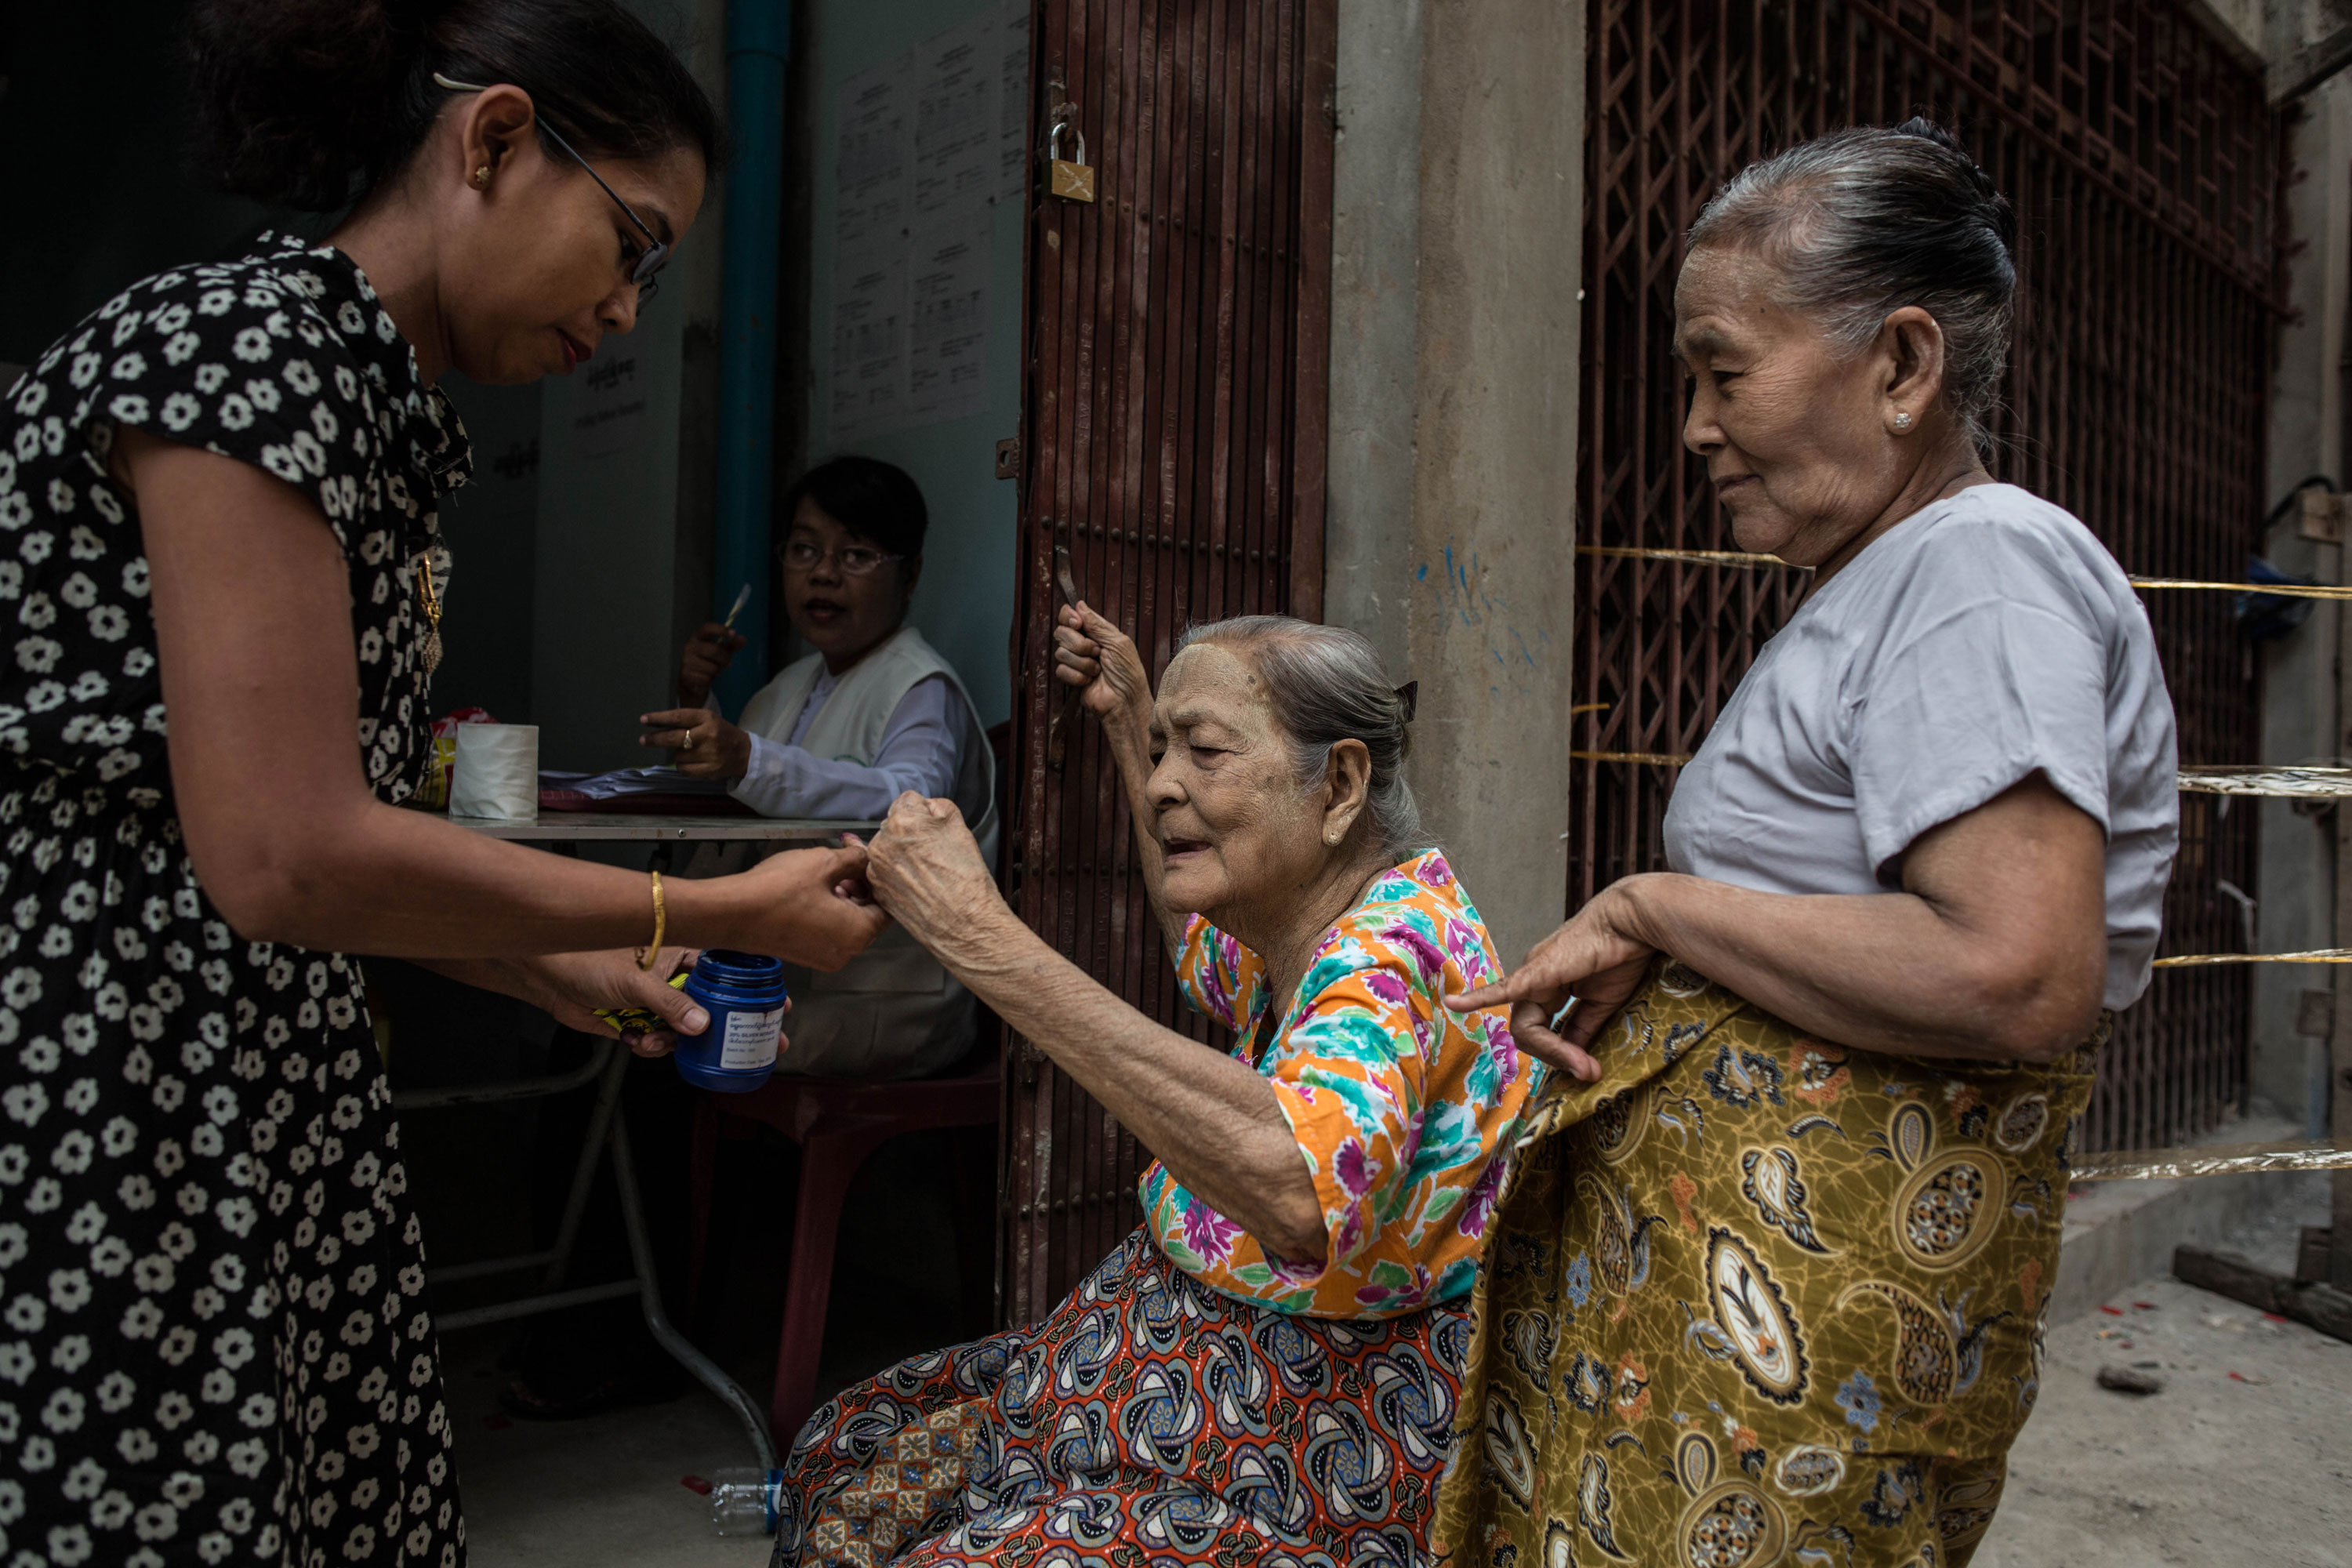 An eldery woman has her smallest finger dipped in purple ink indicating that she has cast her vote. [Andre Malerba/Al Jazeera]